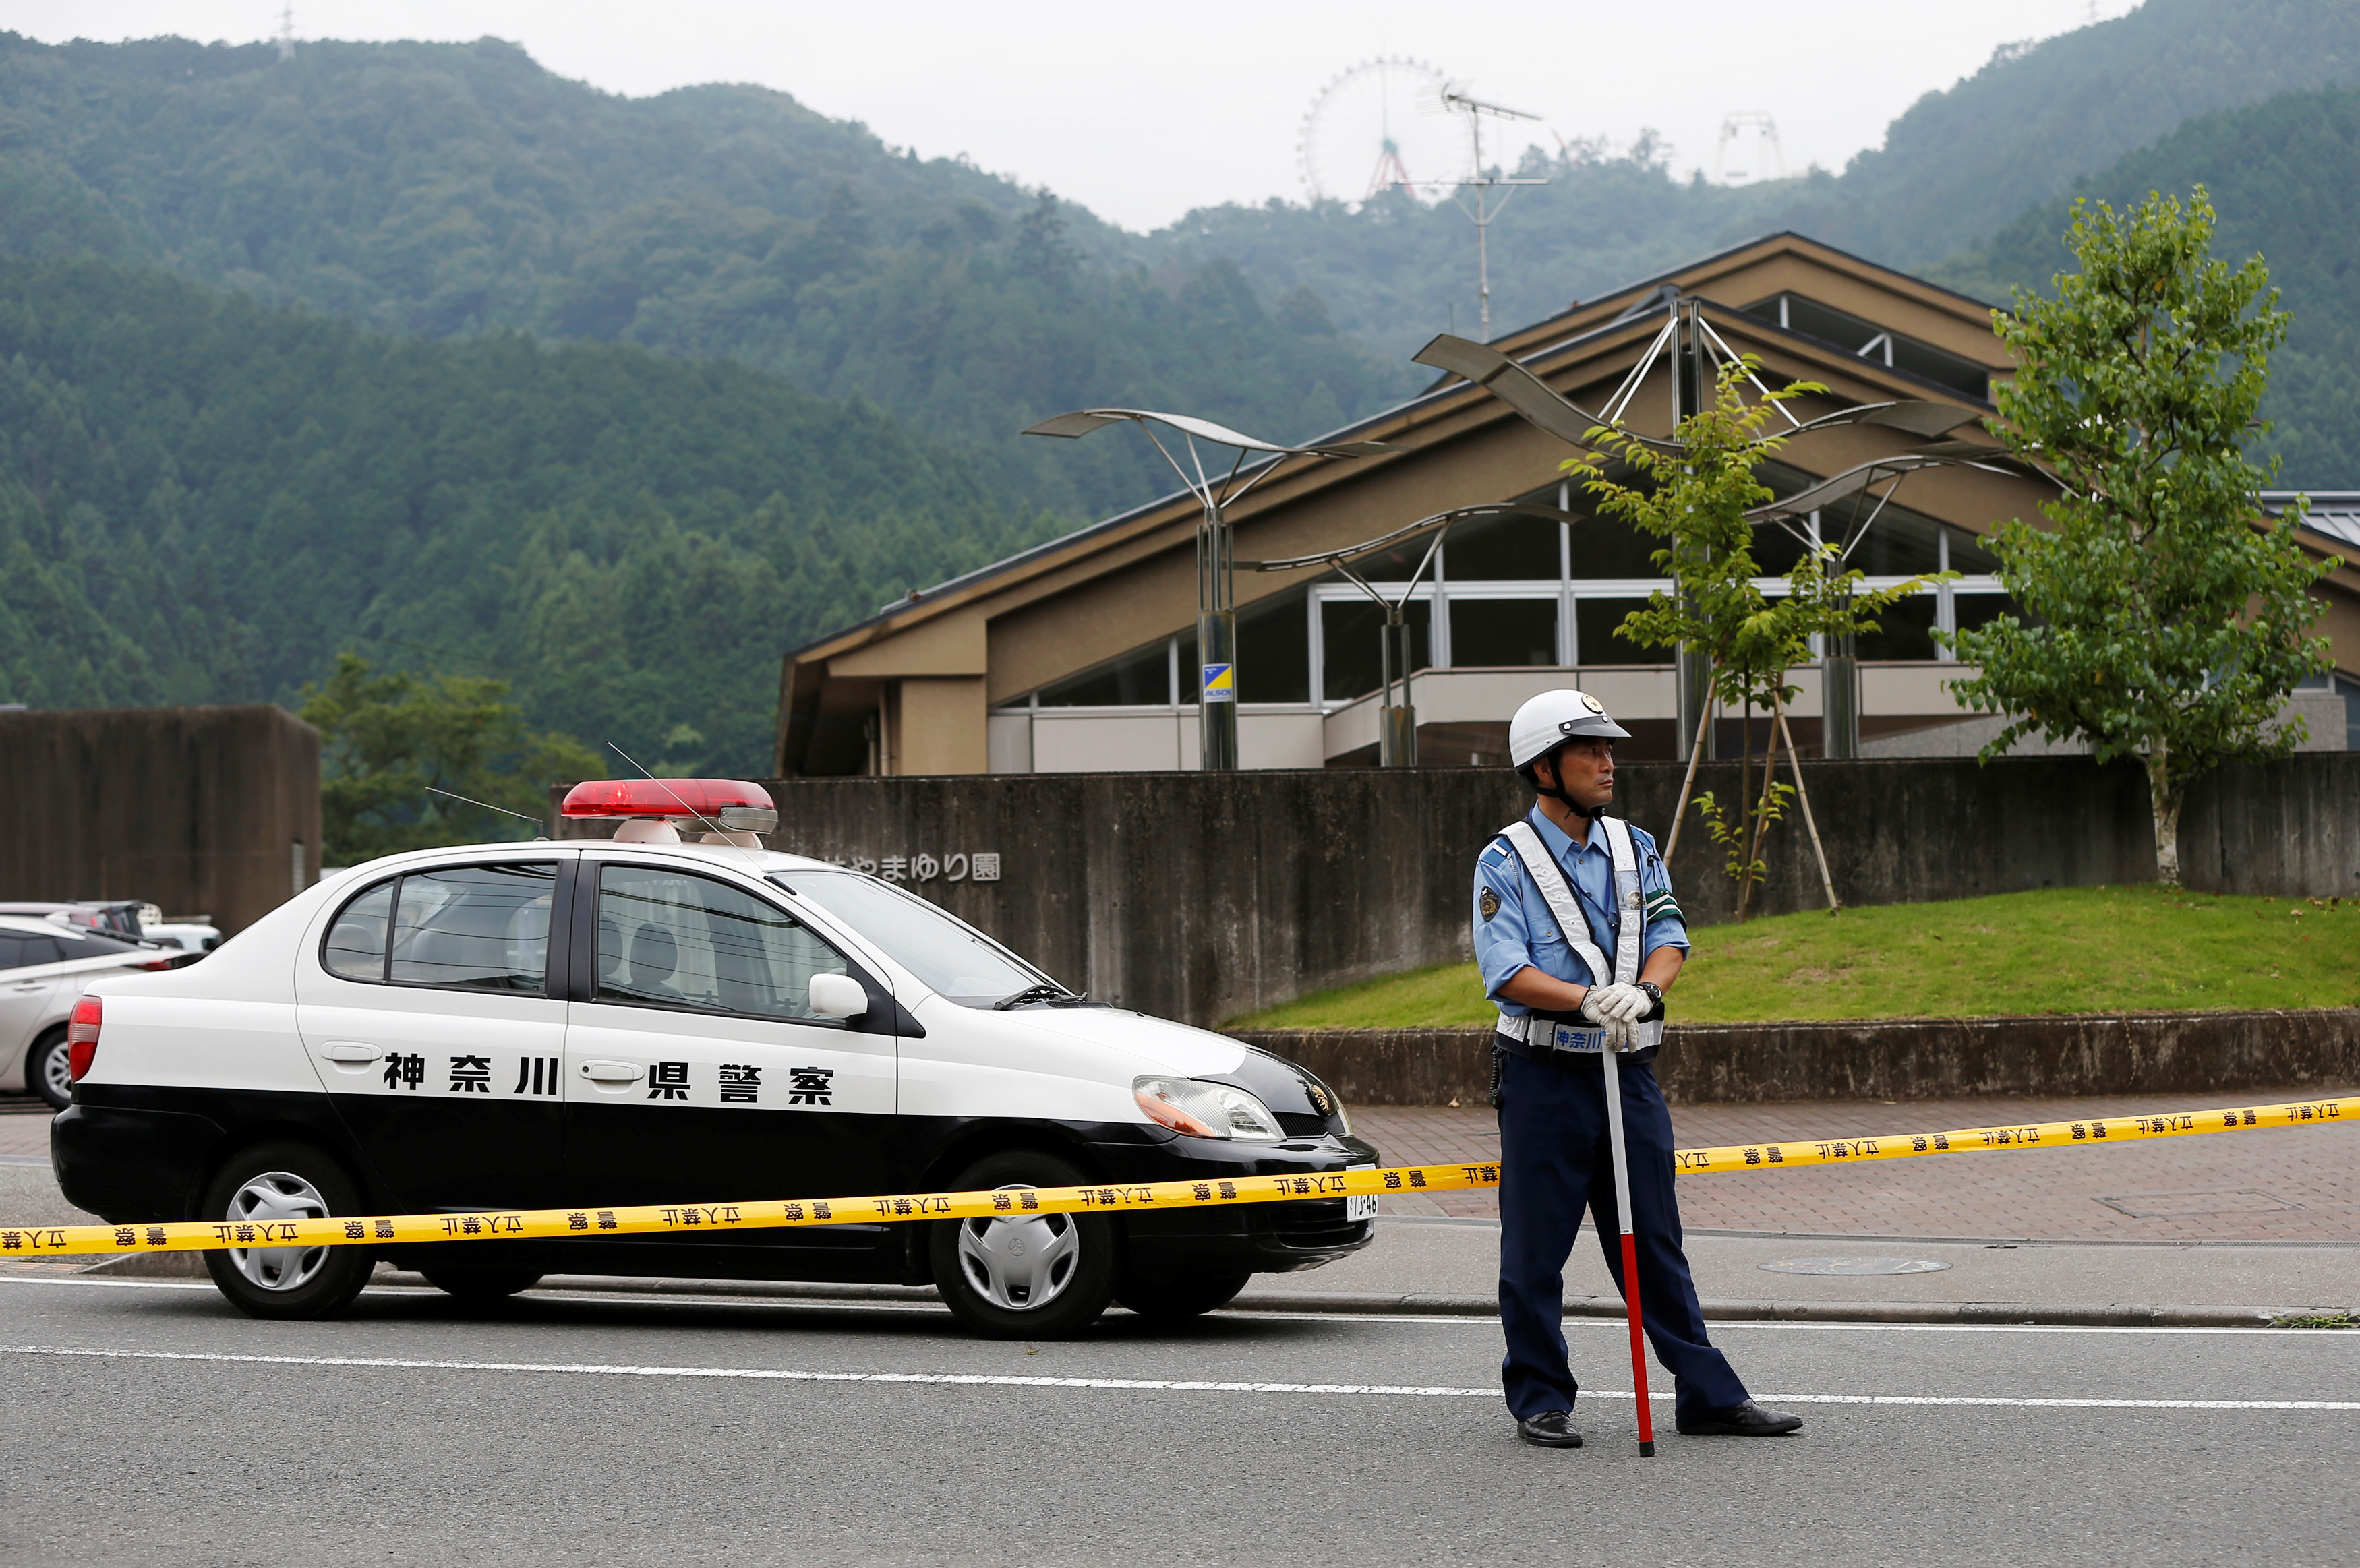 A police officer stands guard in front of a facility for the disabled, where a deadly attack by a knife-wielding man took place, in Sagamihara, Kanagawa prefecture, Japan, July 26, 2016.